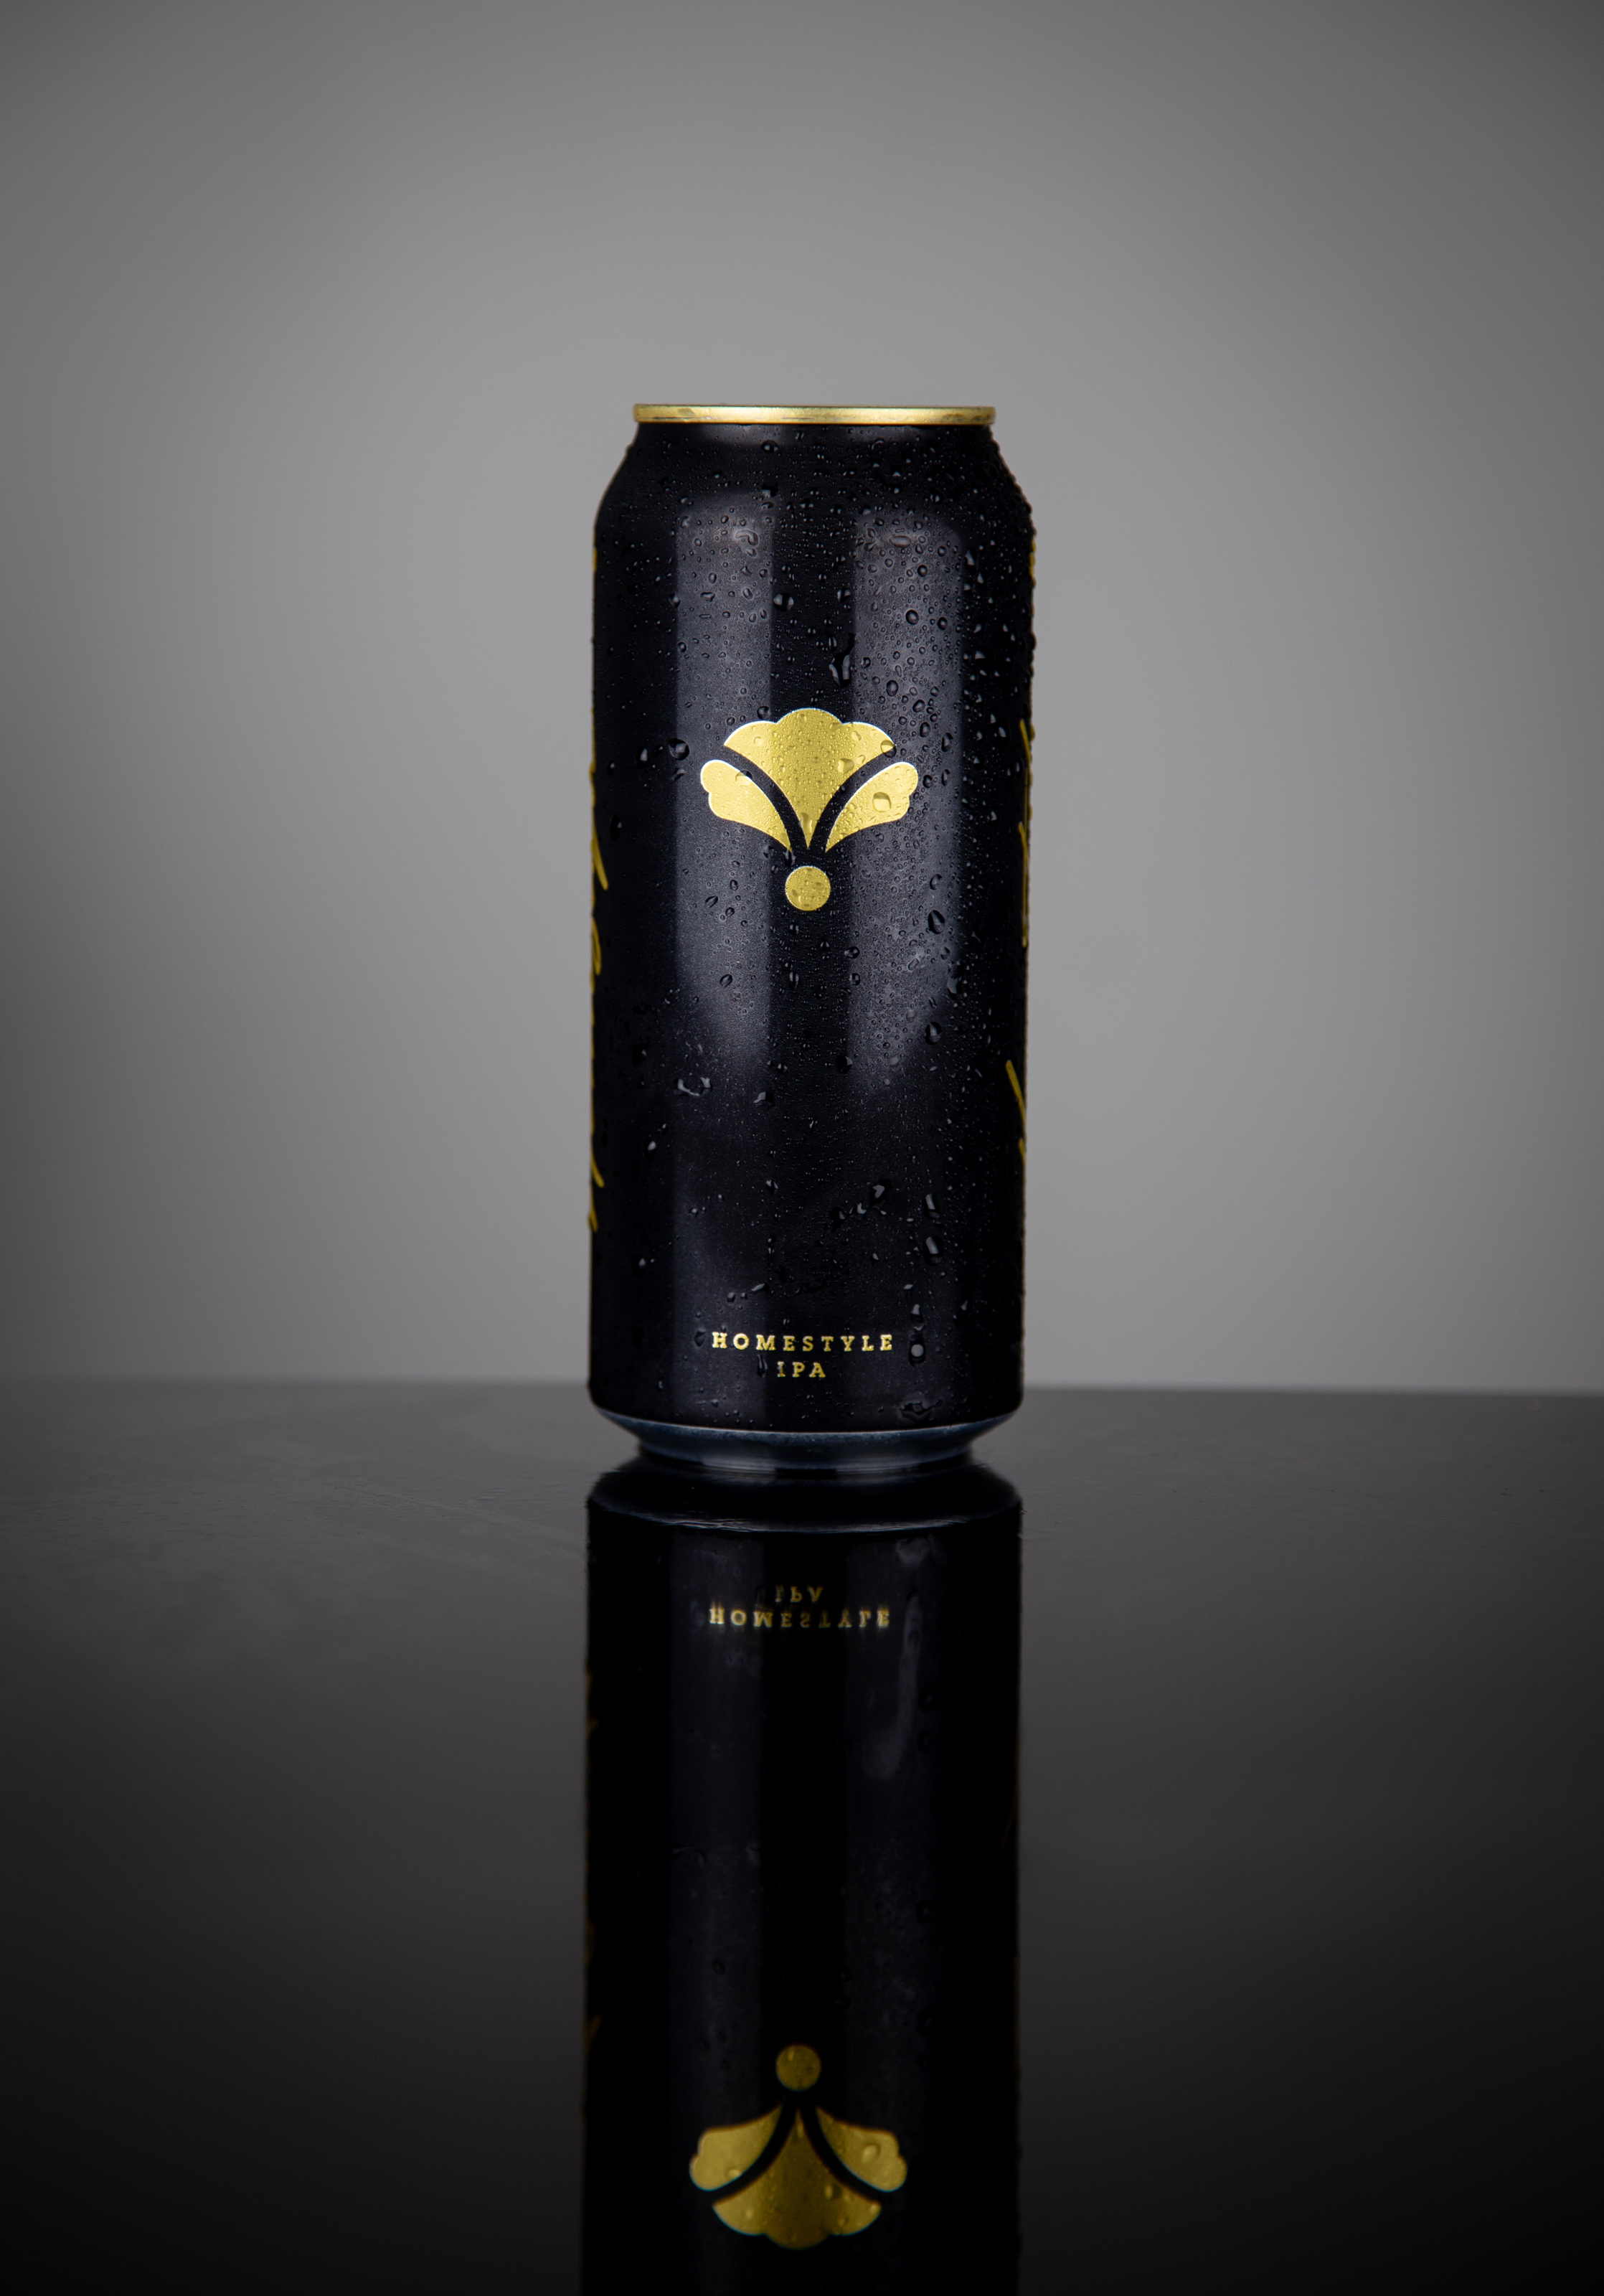 A Nashville's Premium Homestyle IPA Gets a Brand and Packaging Design Facelift / World Brand & Packaging Design Society